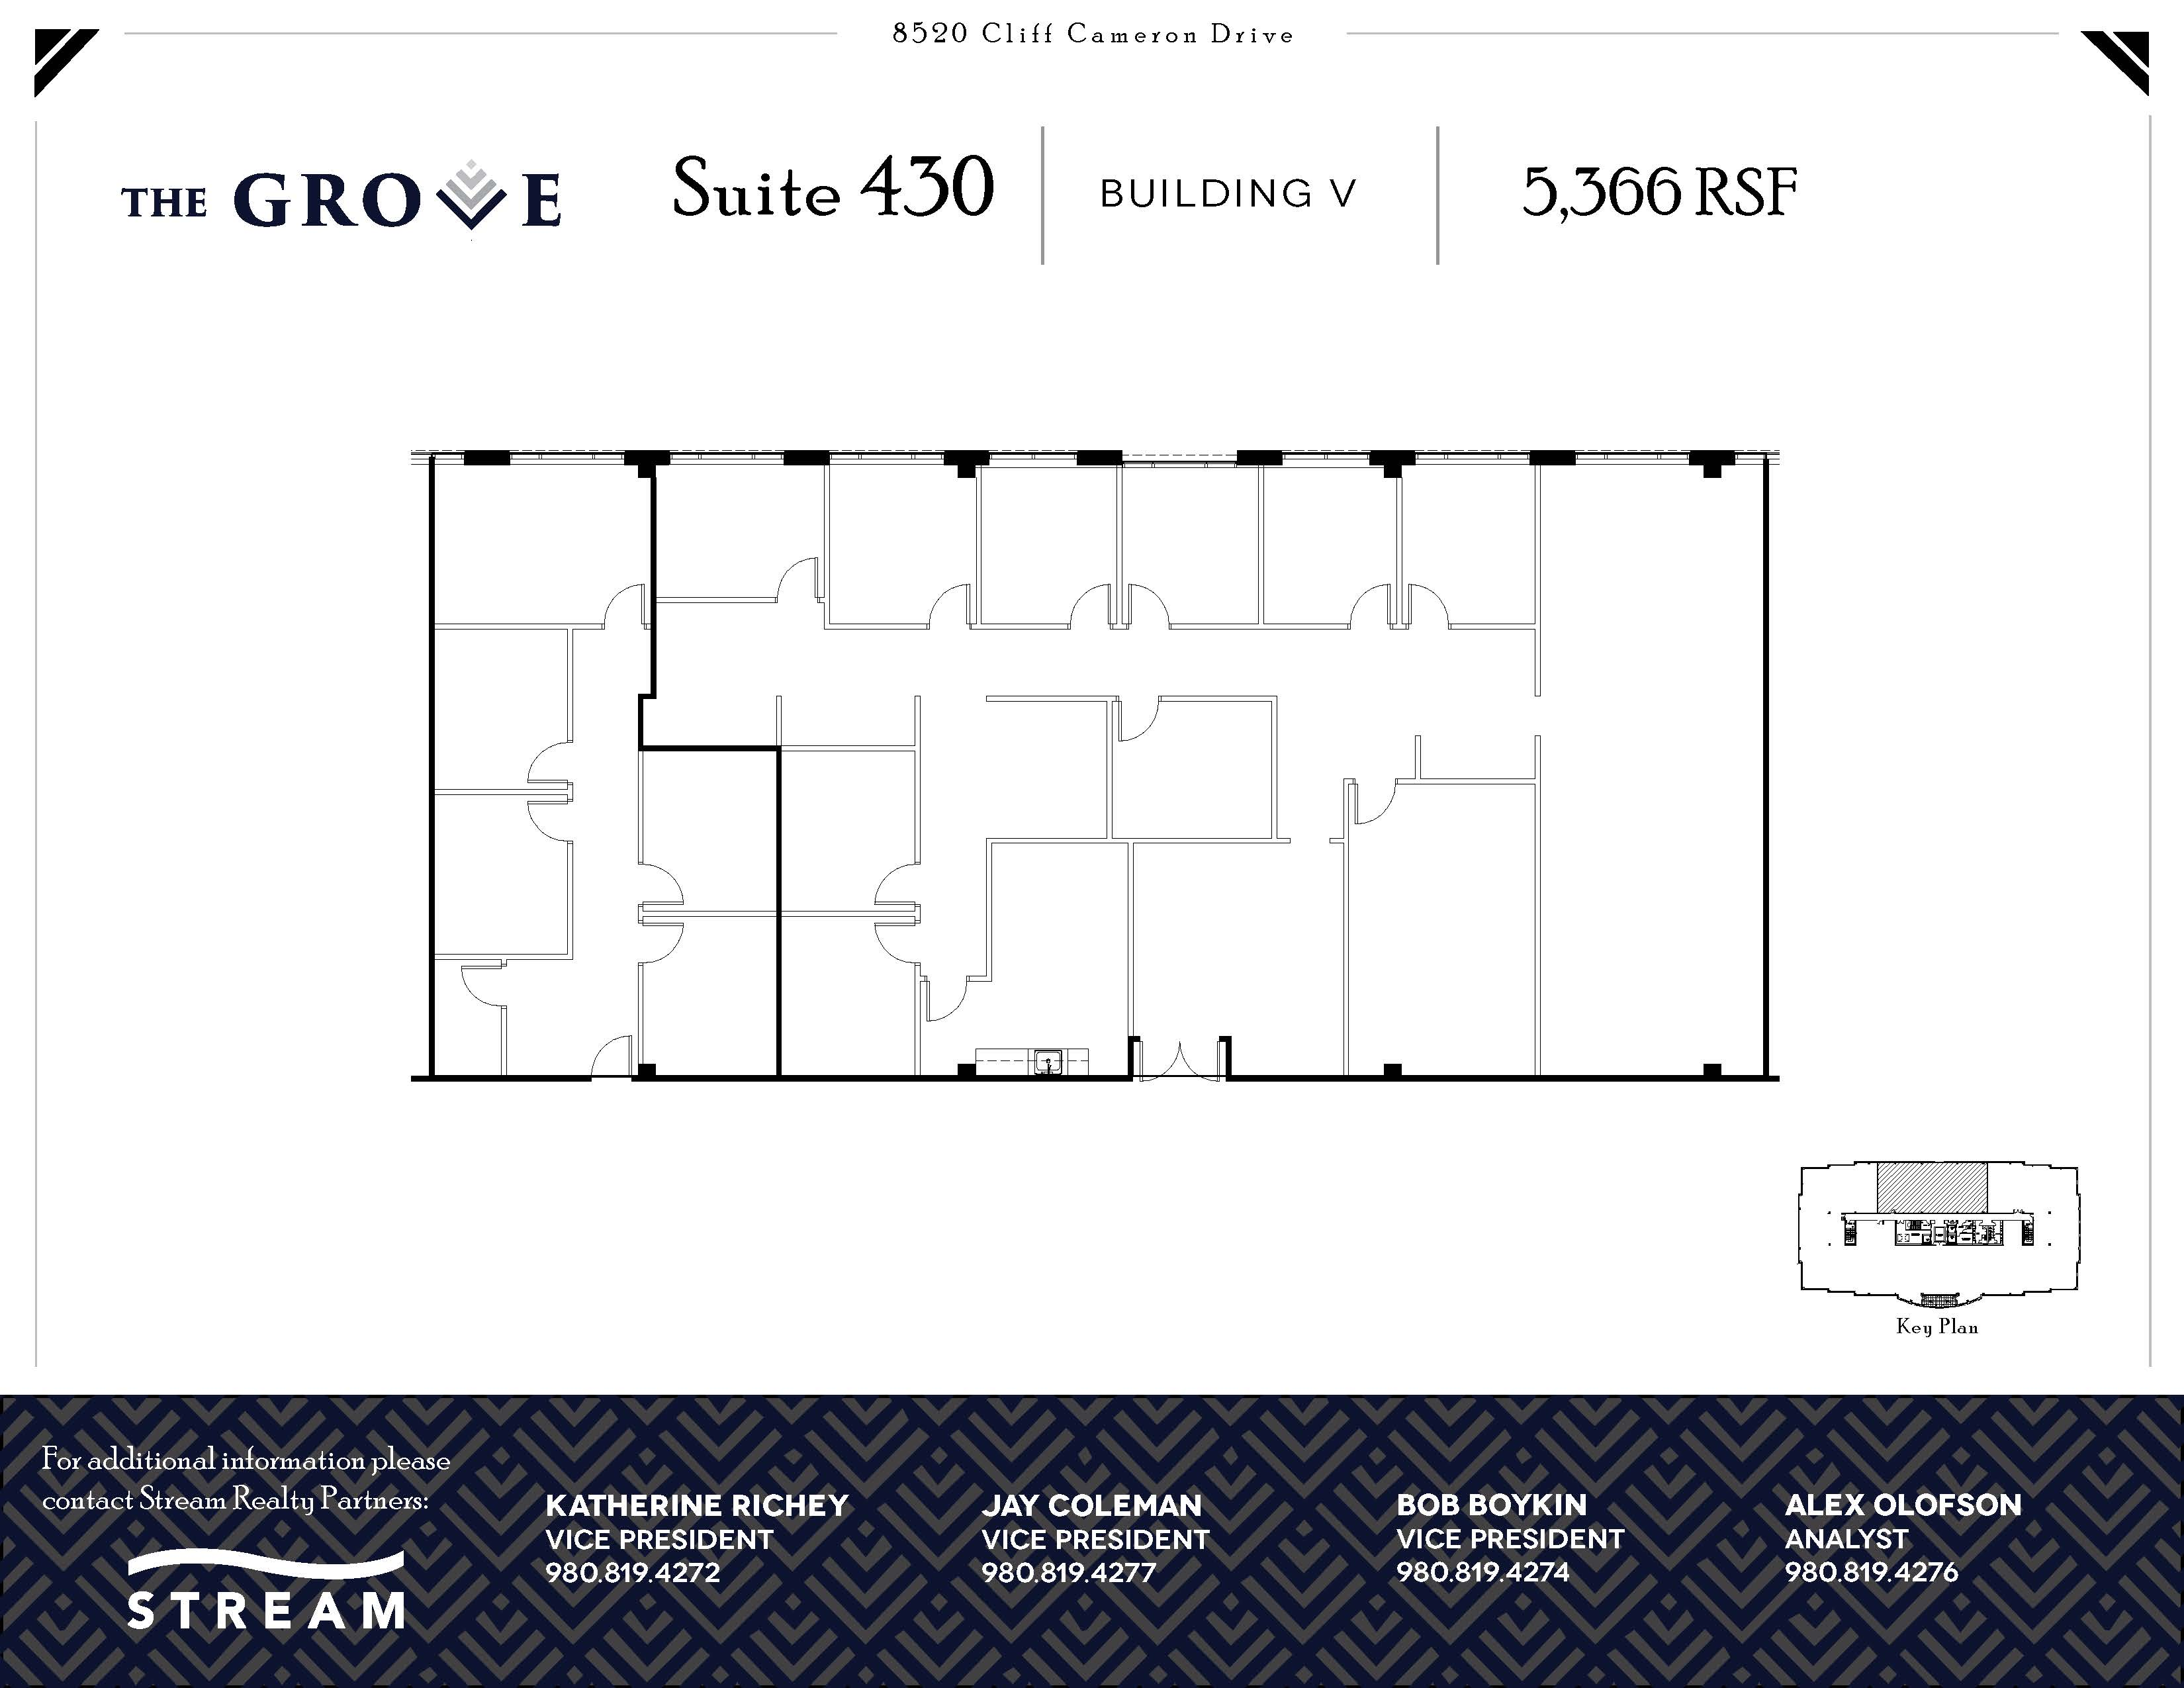 The Grove V [8520] -- Suite 430 -- 5,366 RSF